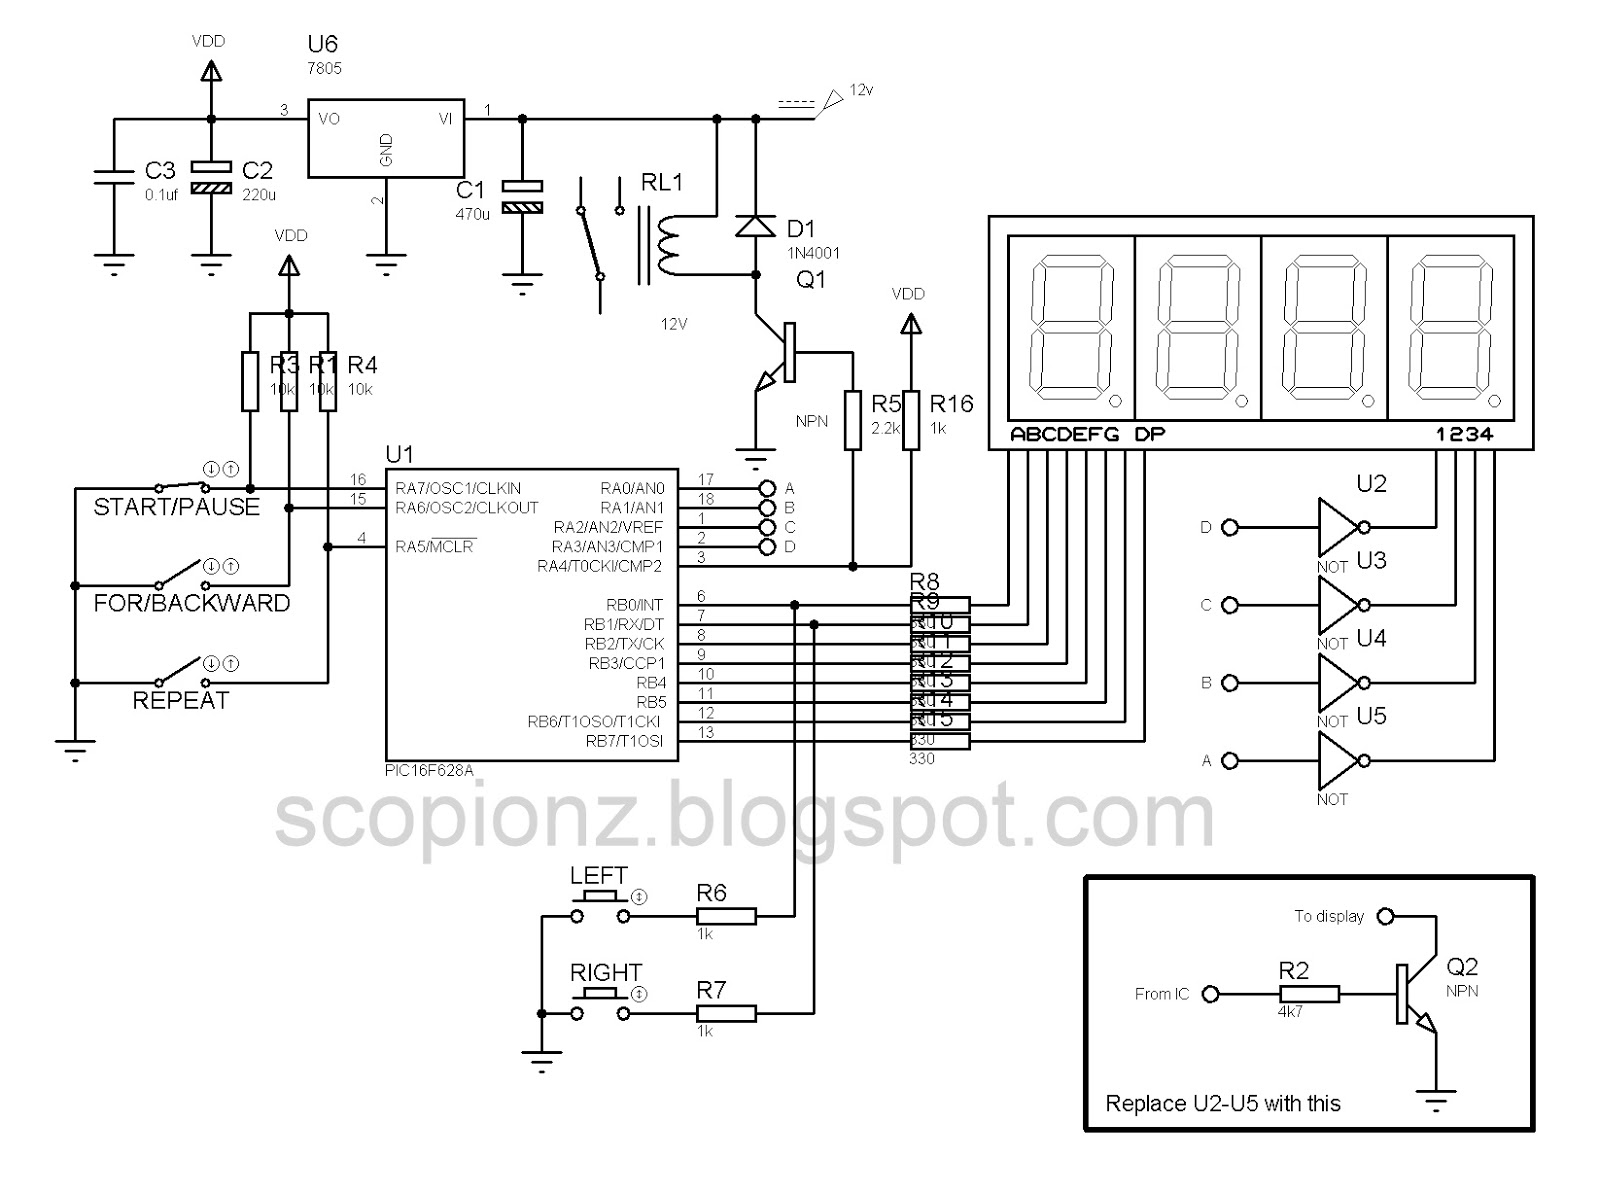 Brilliant Balanced Microphone Preamplifier Circuit Diagram Tradeoficcom Wiring Cloud Oideiuggs Outletorg